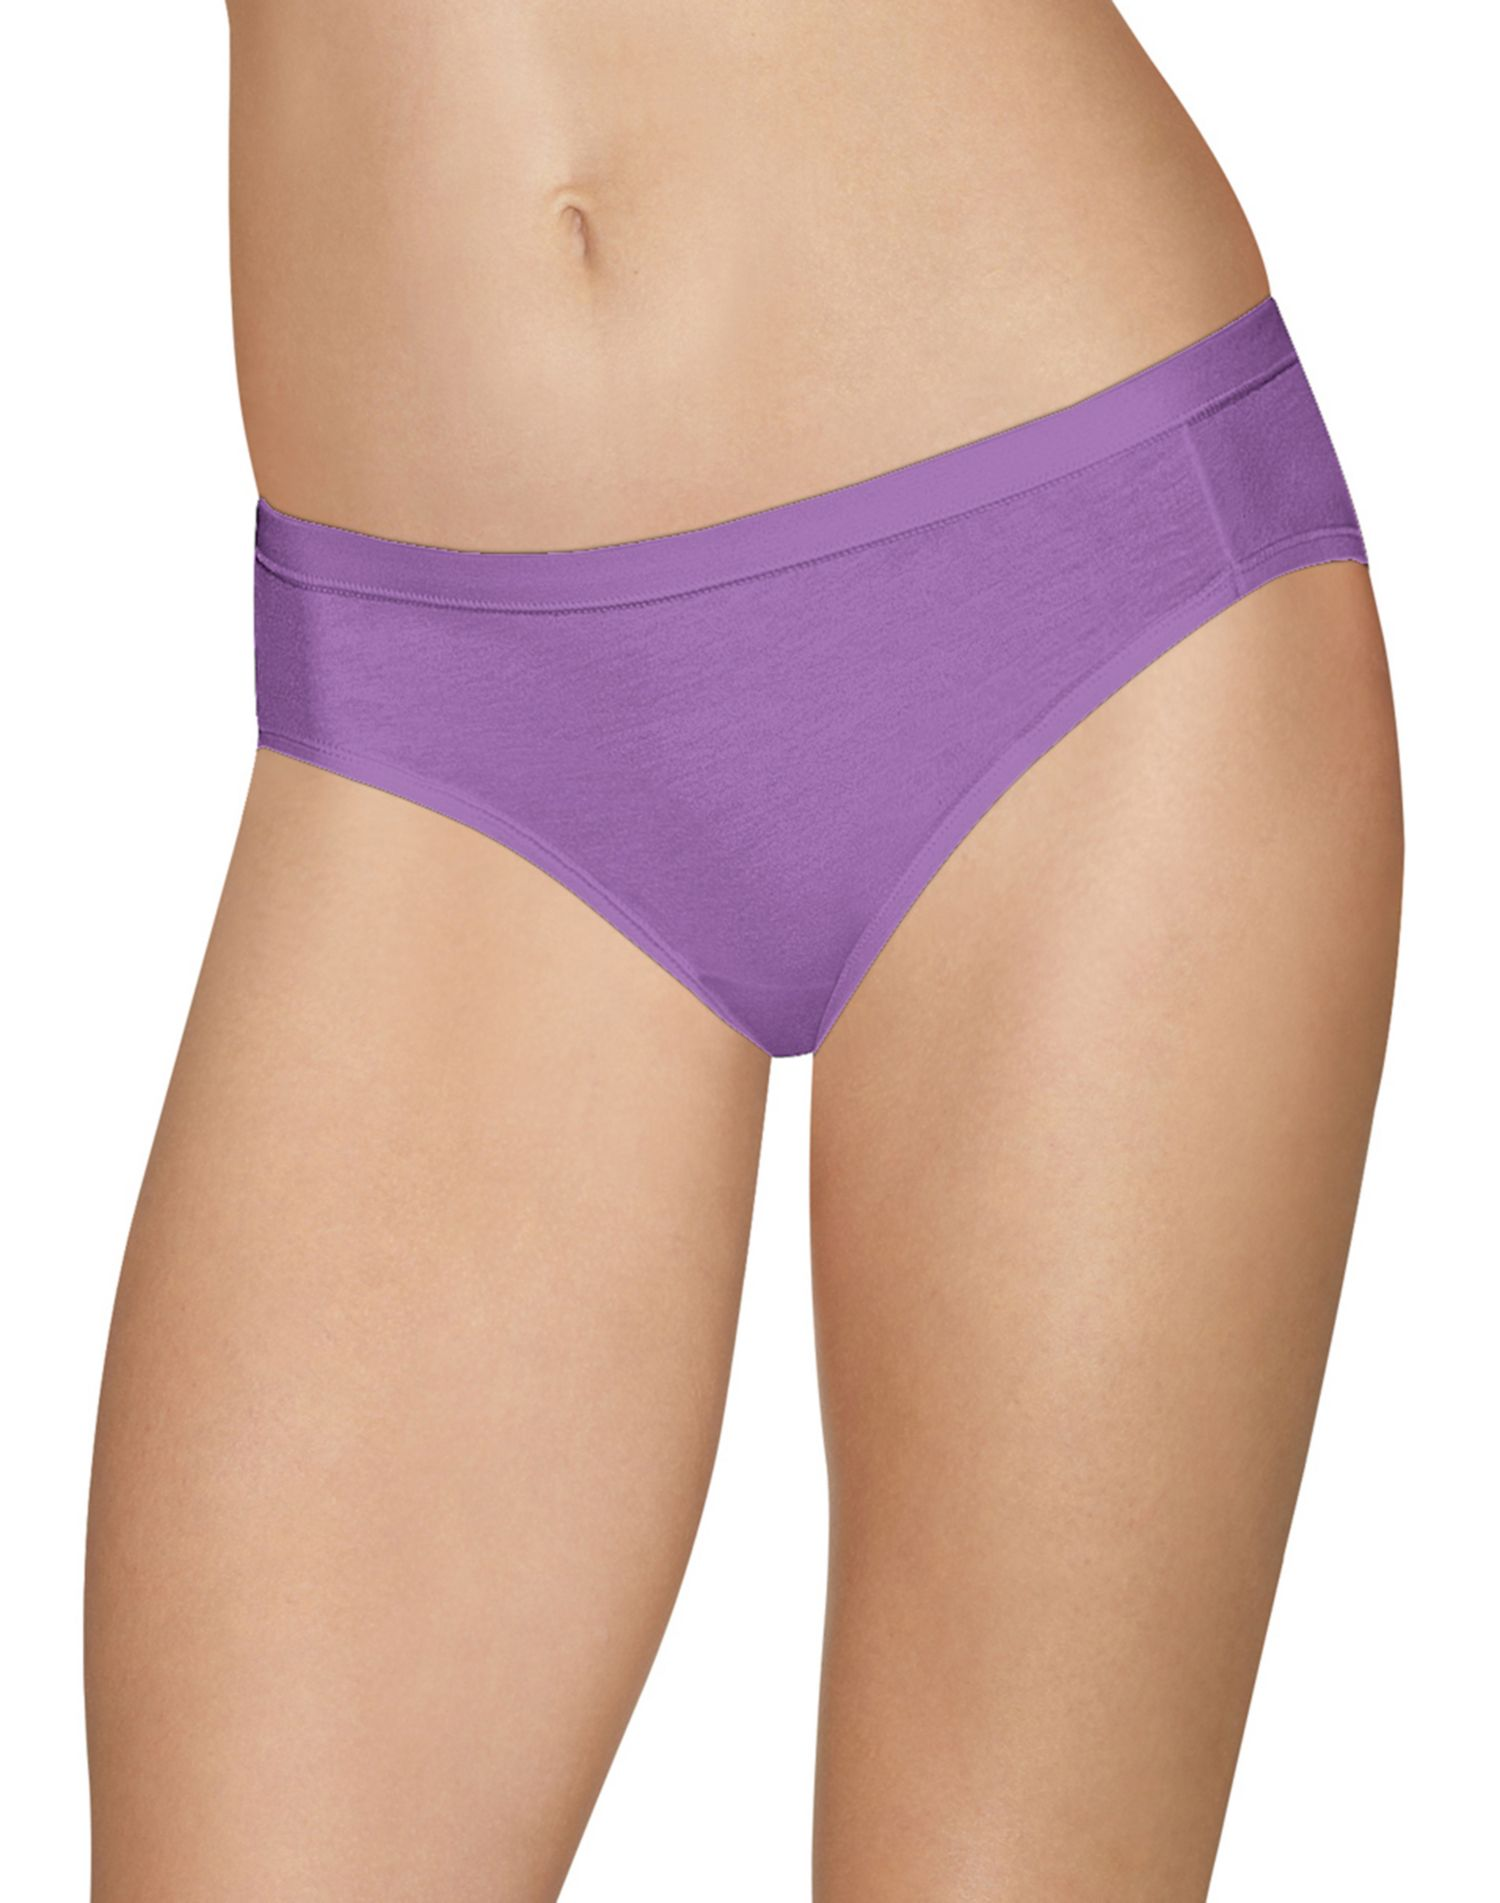 Assorted Colors 4-Pack Hanes Ultimate Women/'s Cotton Stretch Hipster Panties